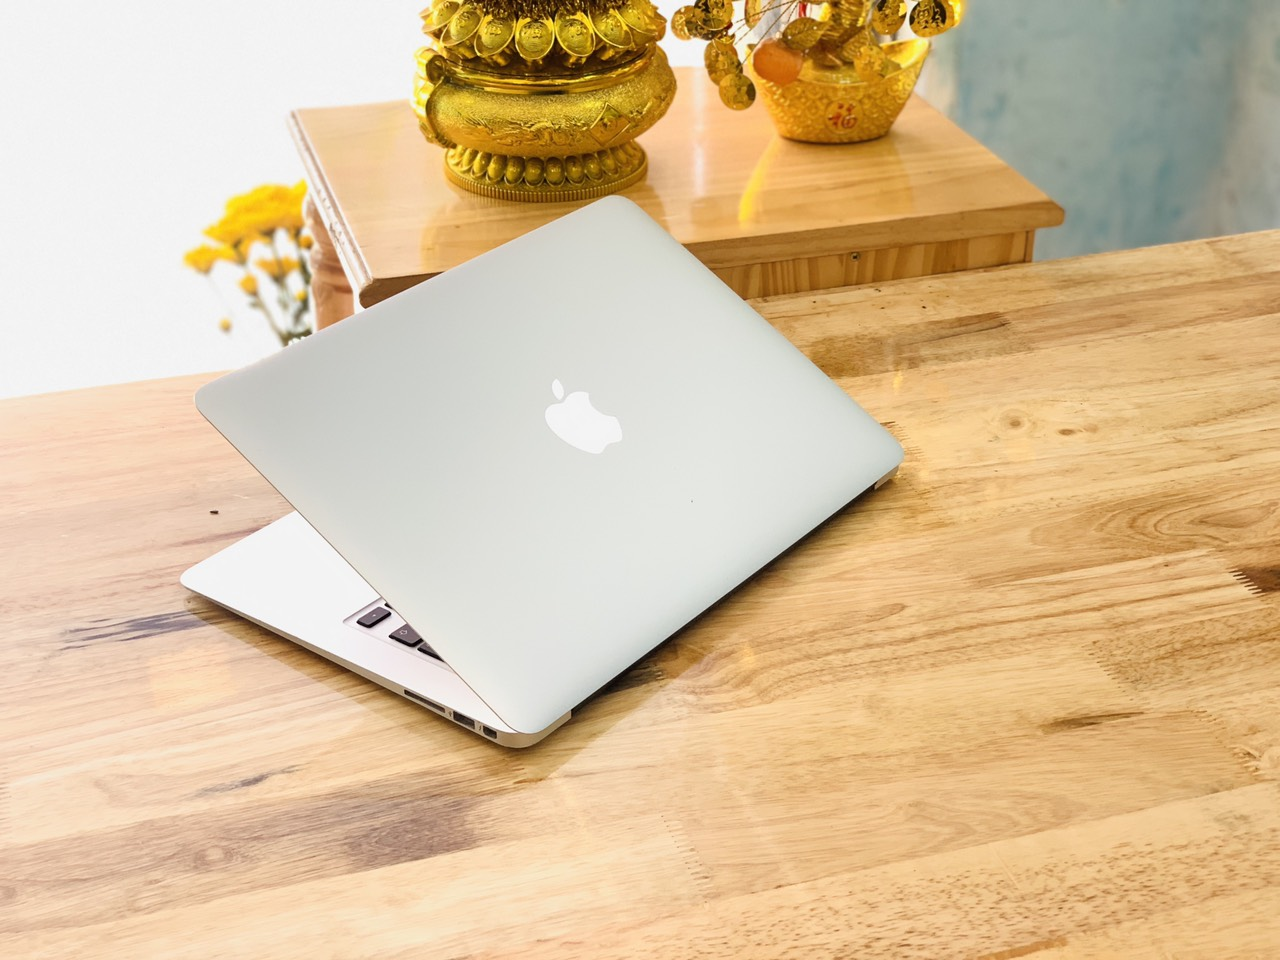 MacBook Air 2011